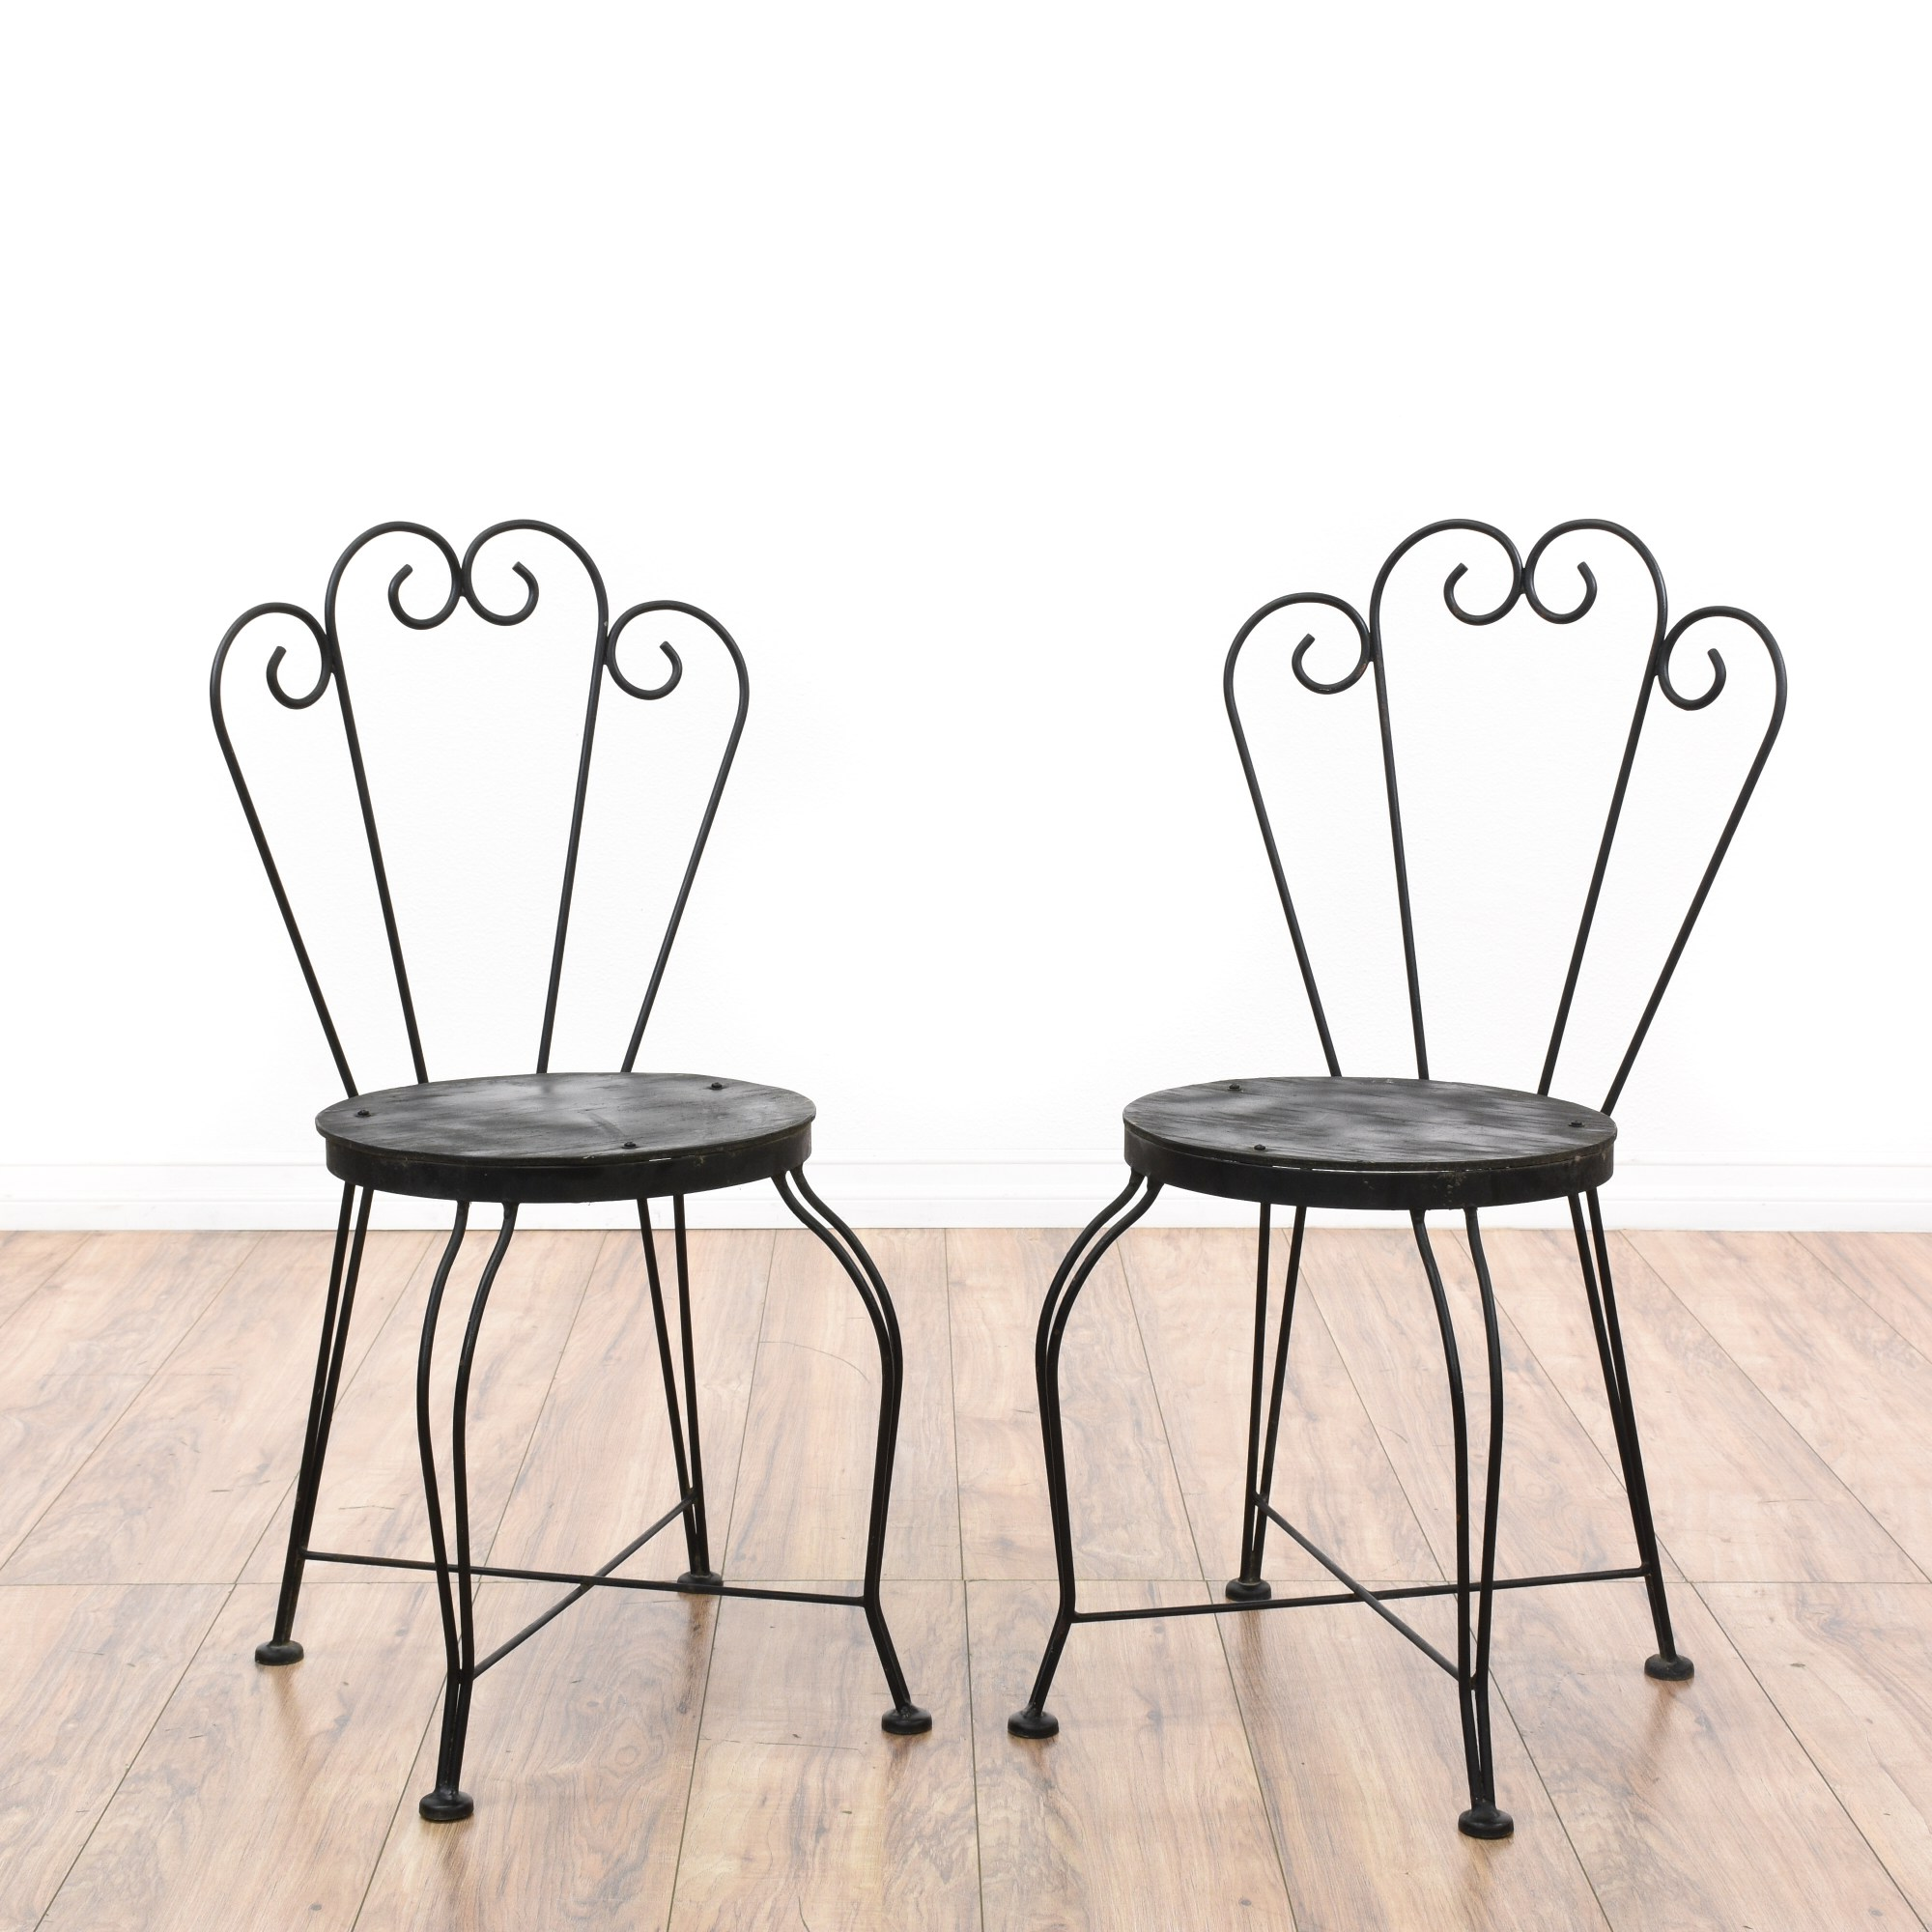 Outdoor Cafe Chairs Pair Of Black Metal Outdoor Cafe Chairs Loveseat Vintage